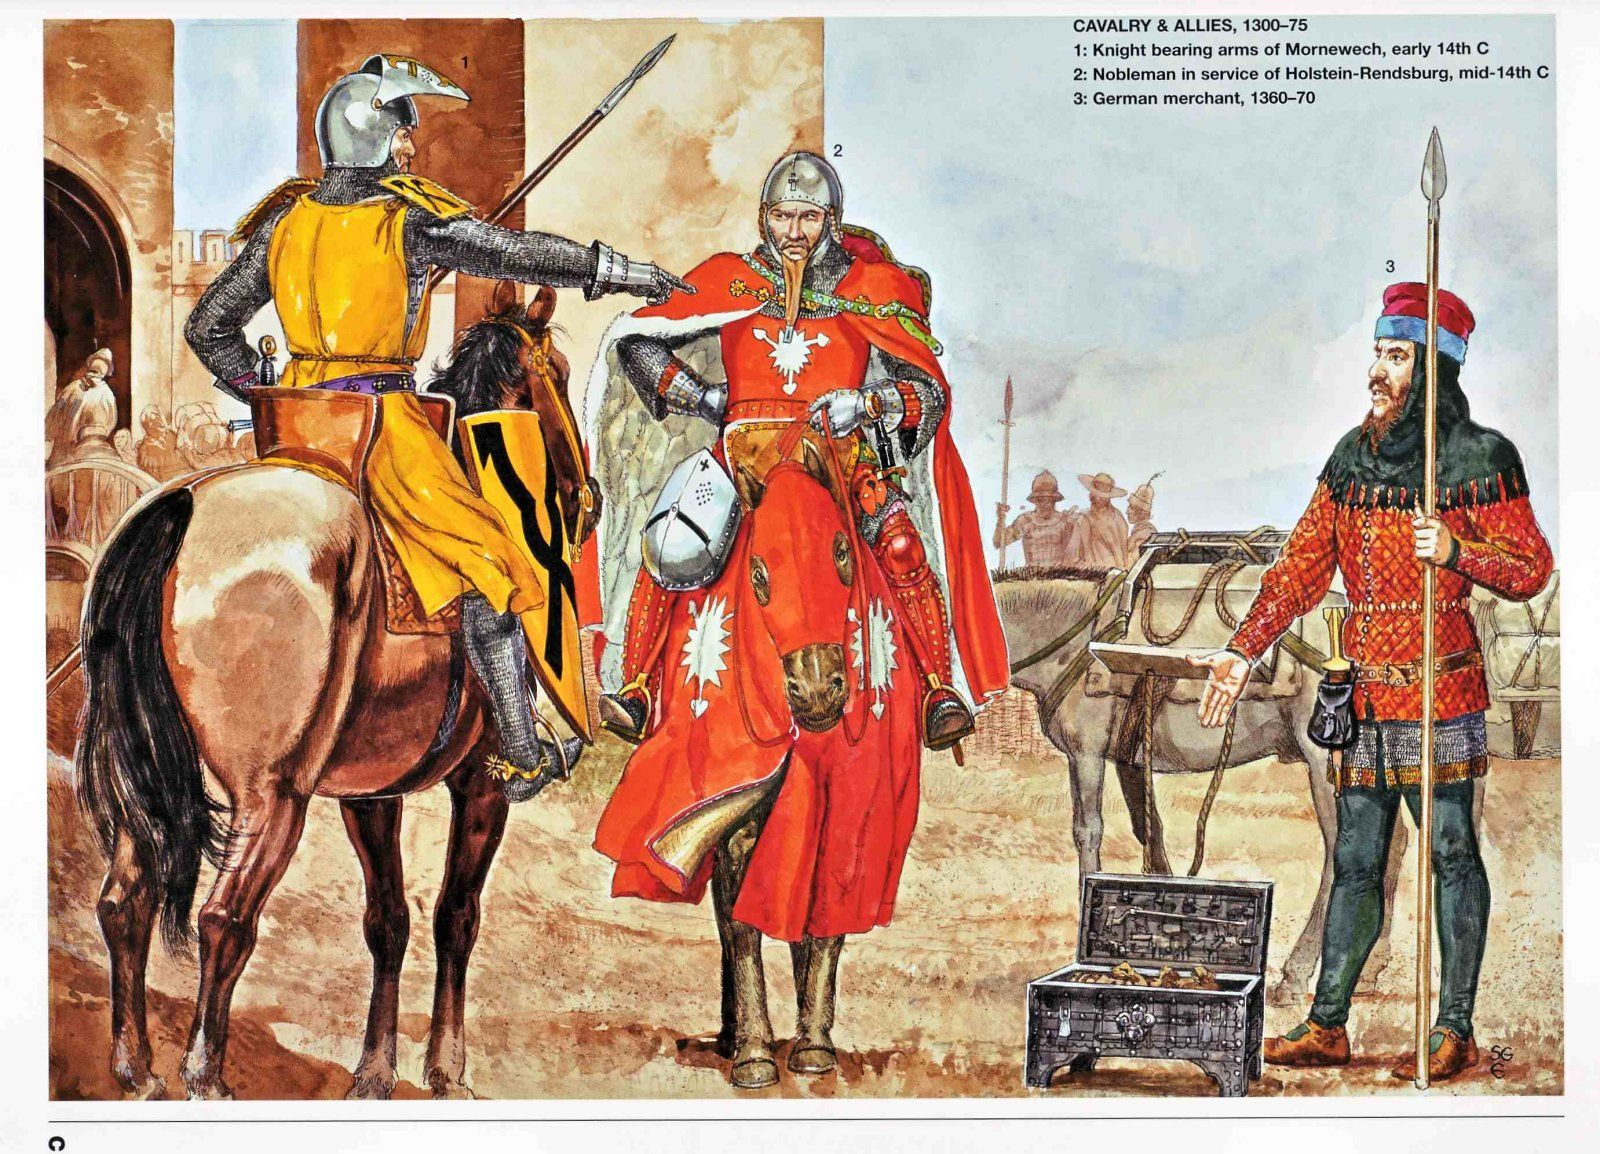 The Portuguese In The Age Of Discovery C 1340 1665 By: Hanseatic League Cavalry And Allies 1300